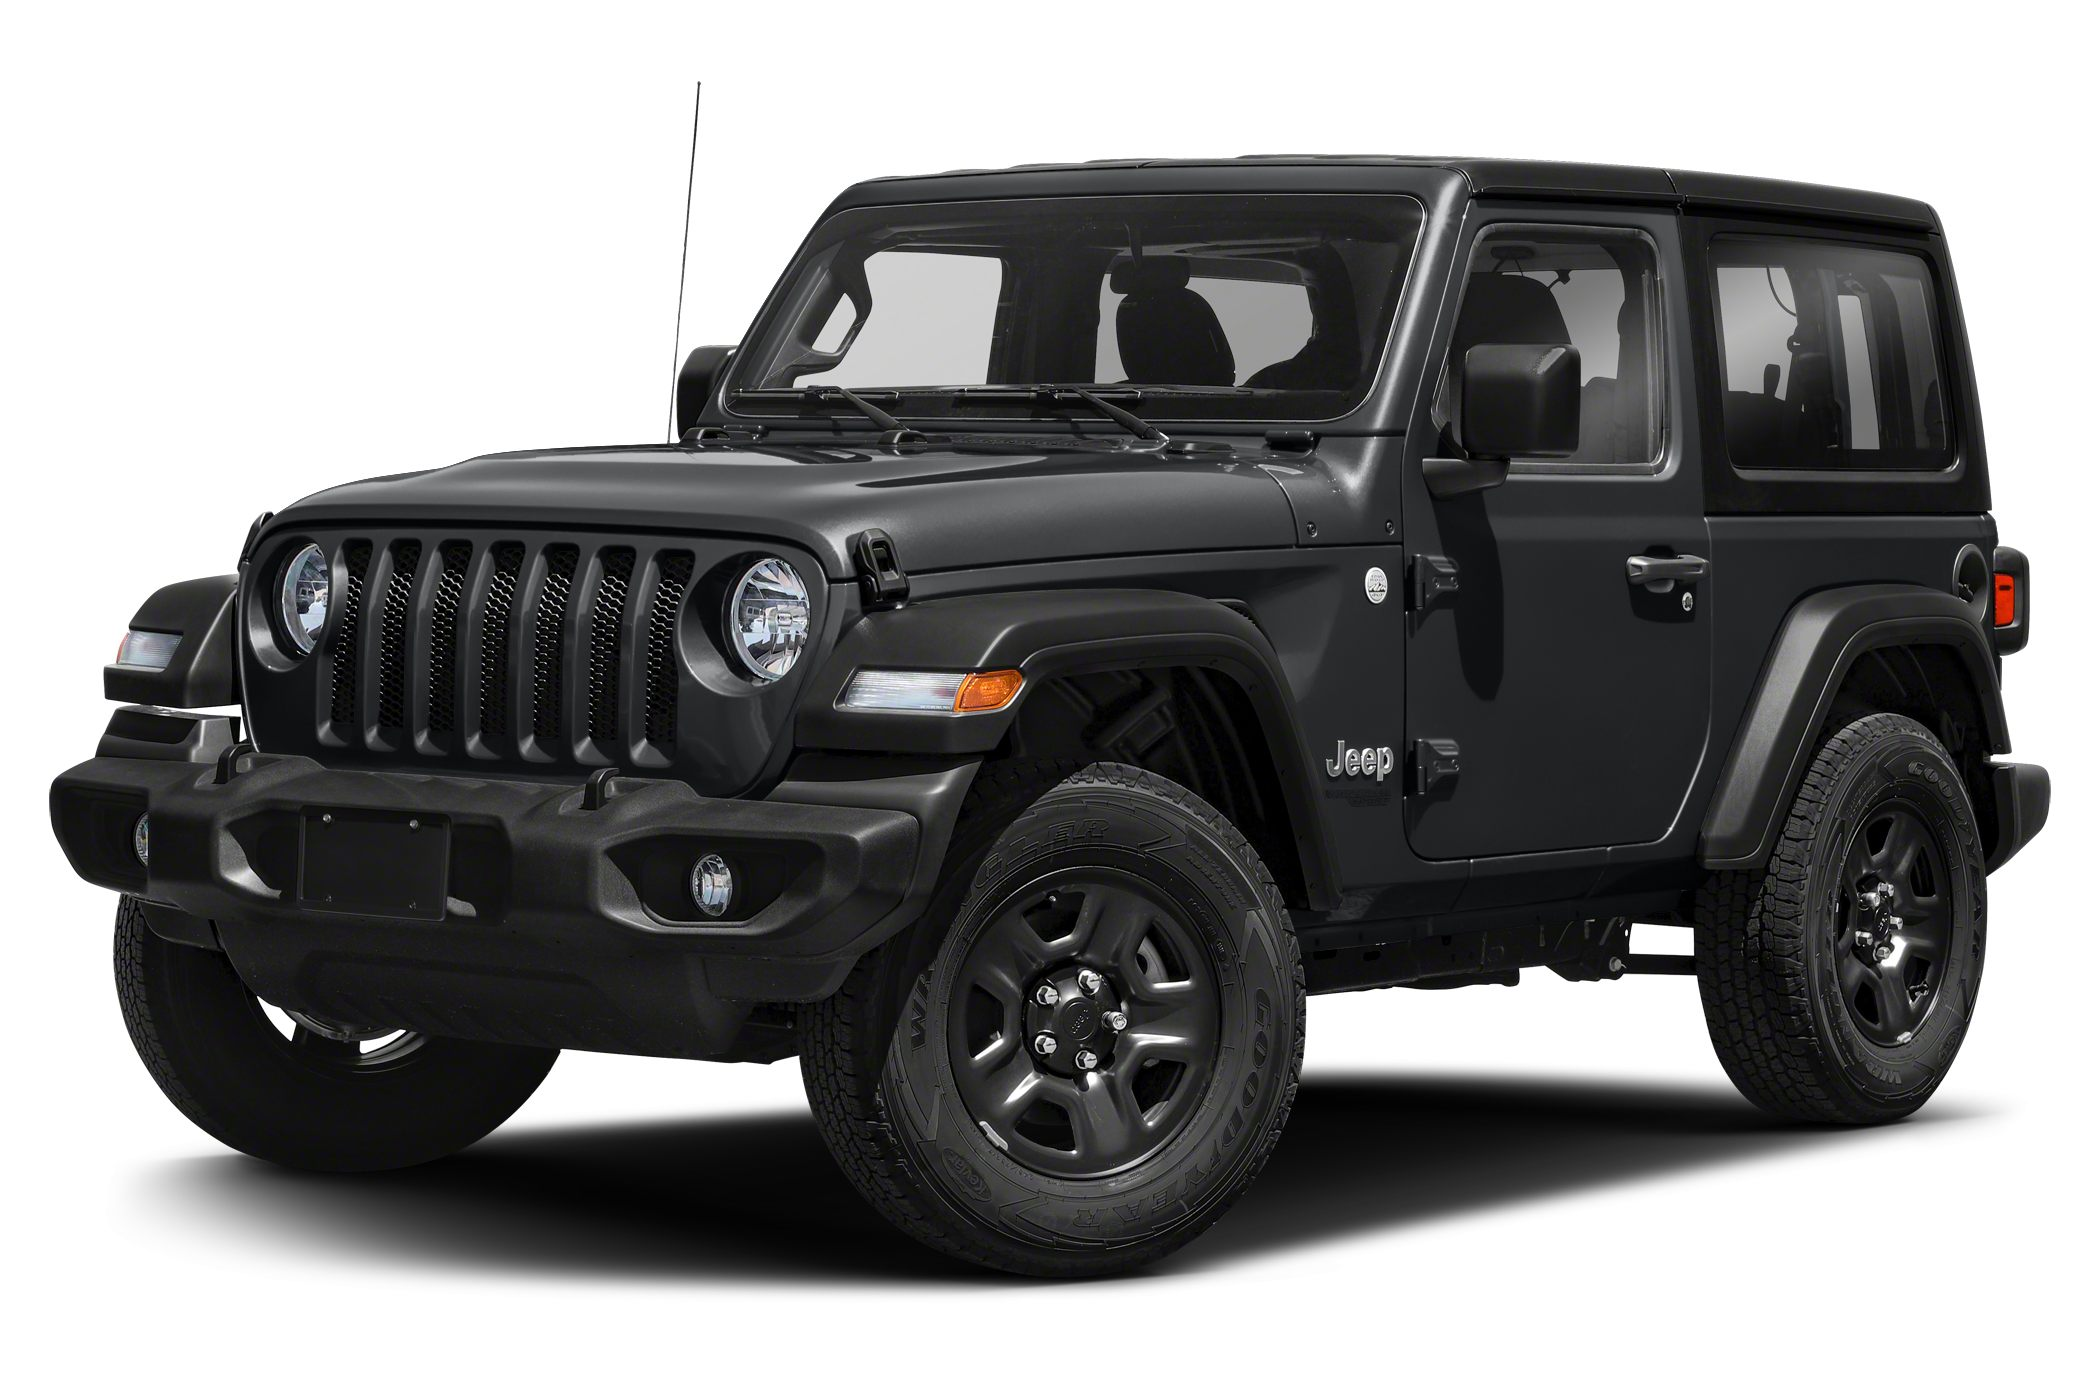 2020 Jeep Wrangler Sahara 2 Door